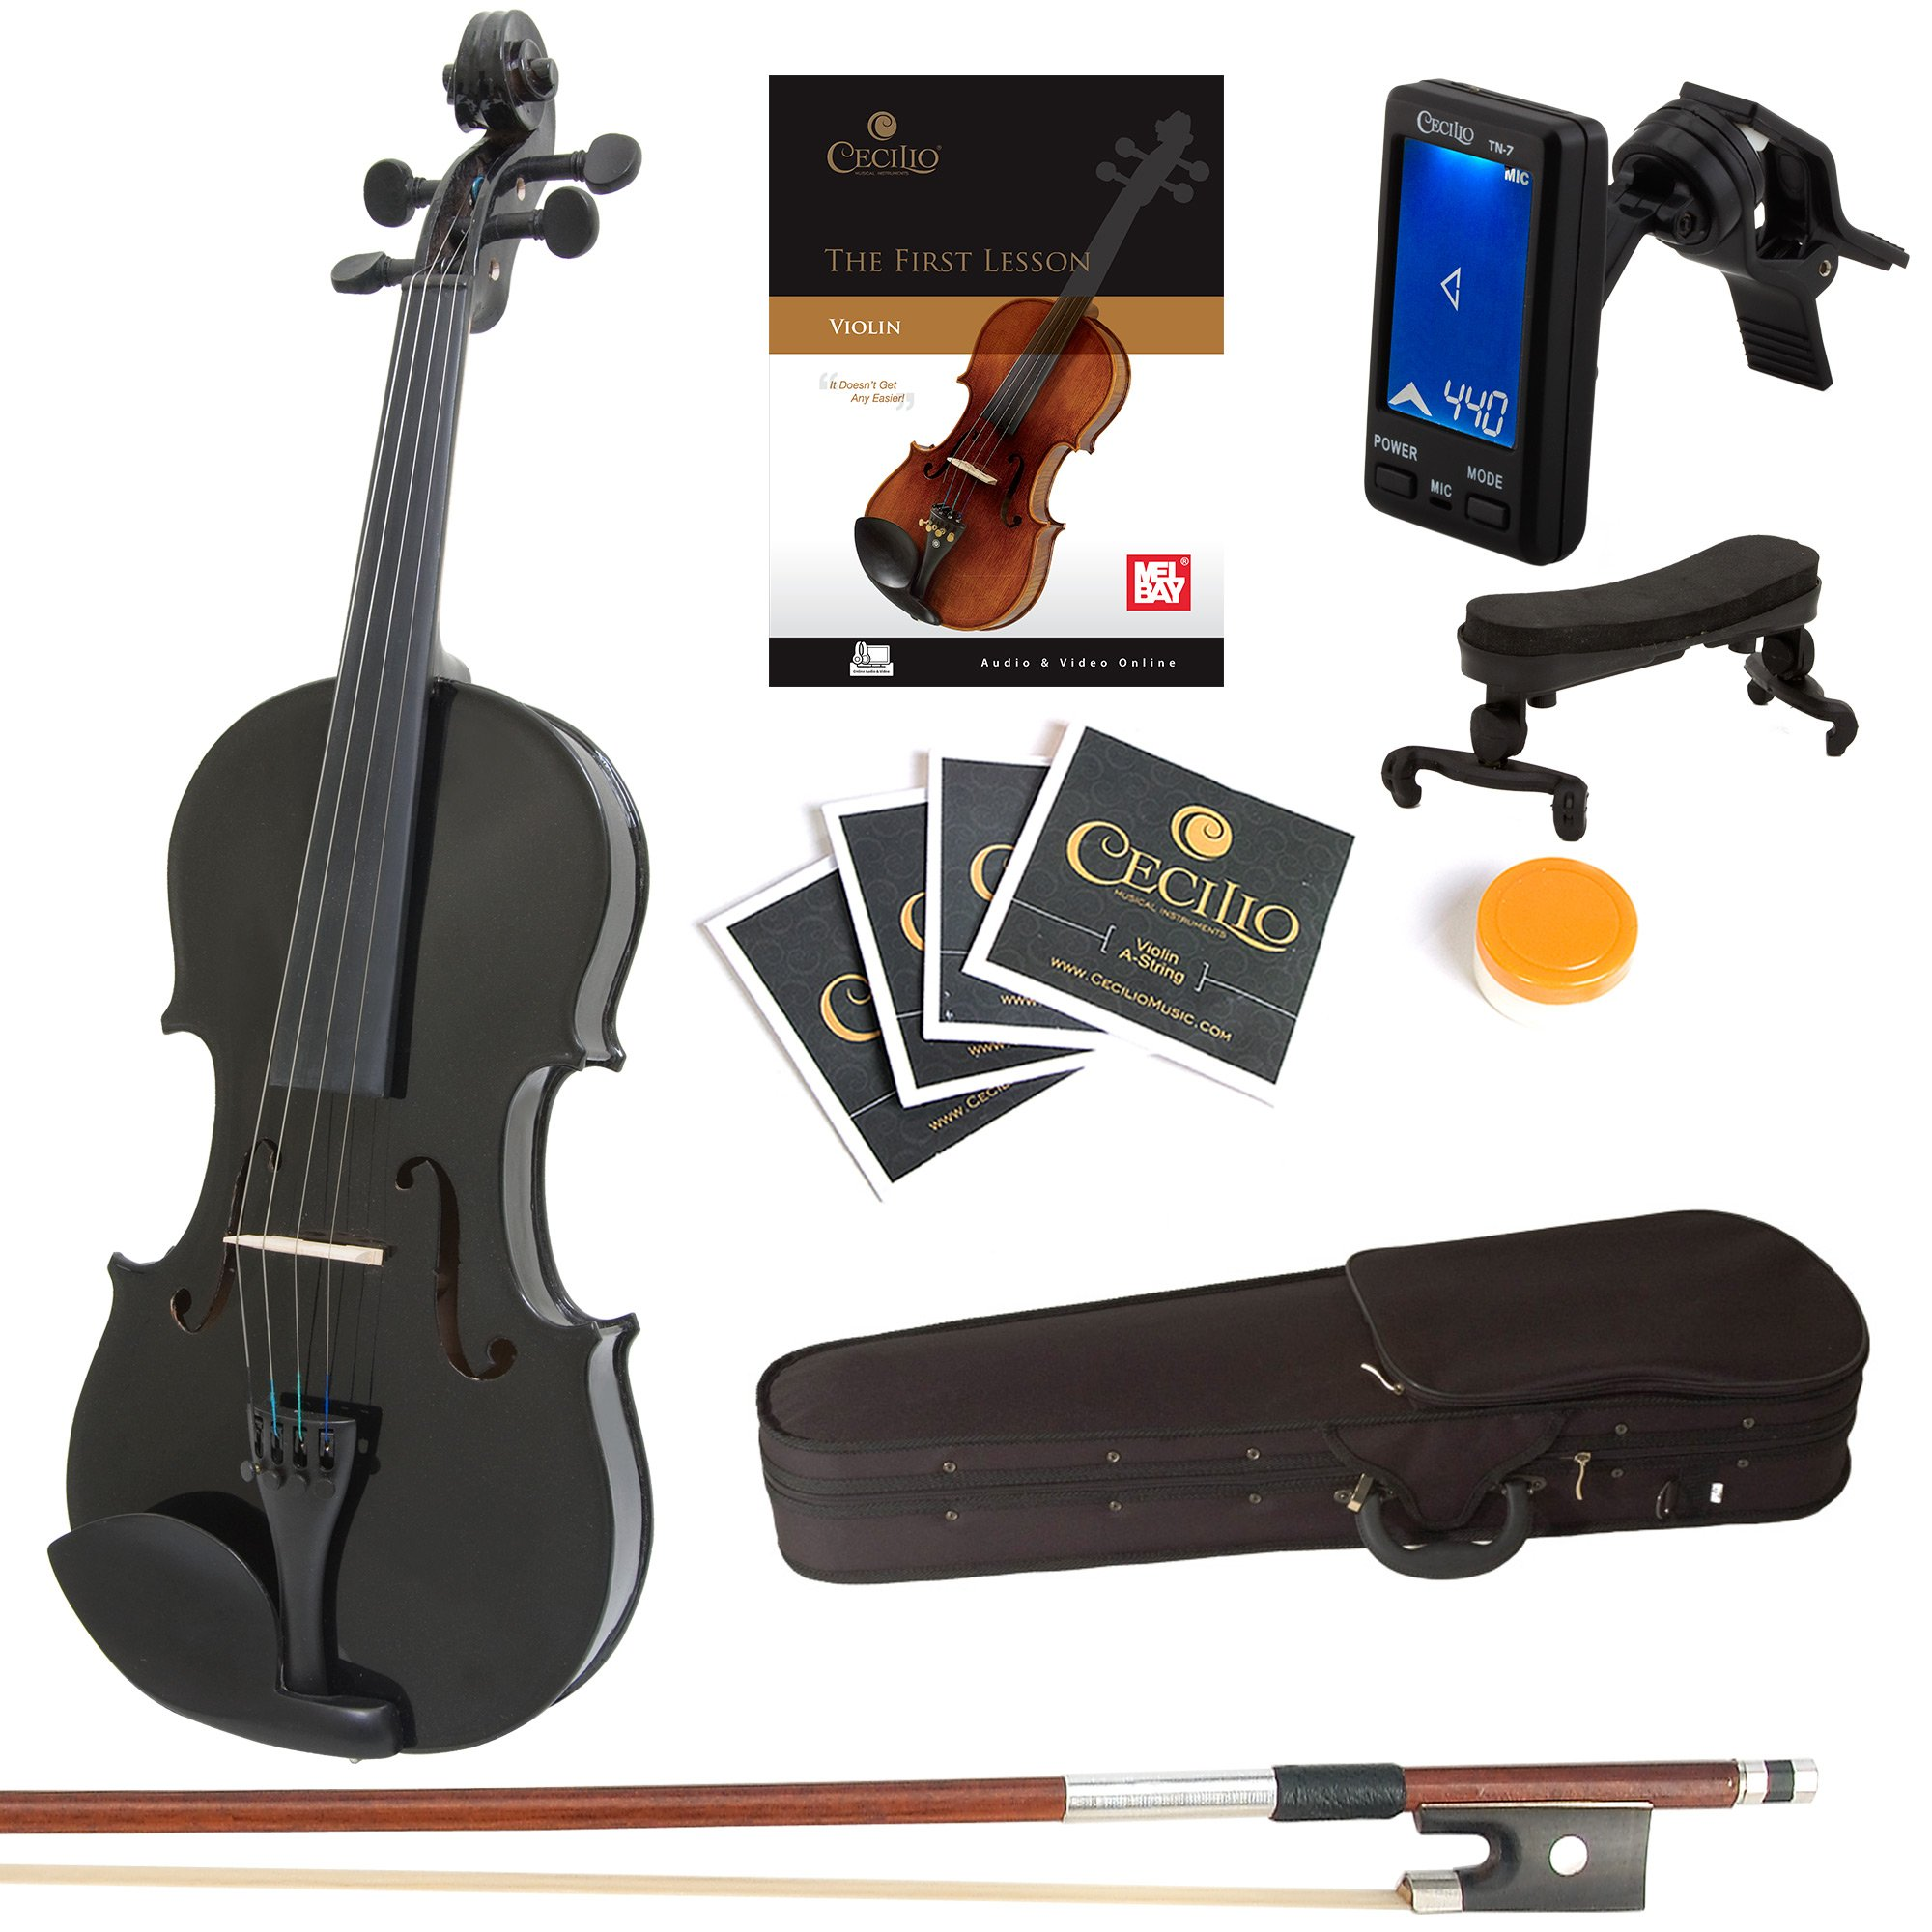 Mendini 4/4 MV-Black Solid Wood Violin with Tuner, Lesson Book, Shoulder Rest, Extra Strings, Bow and Case, Metallic Black Full Size by Mendini by Cecilio (Image #1)